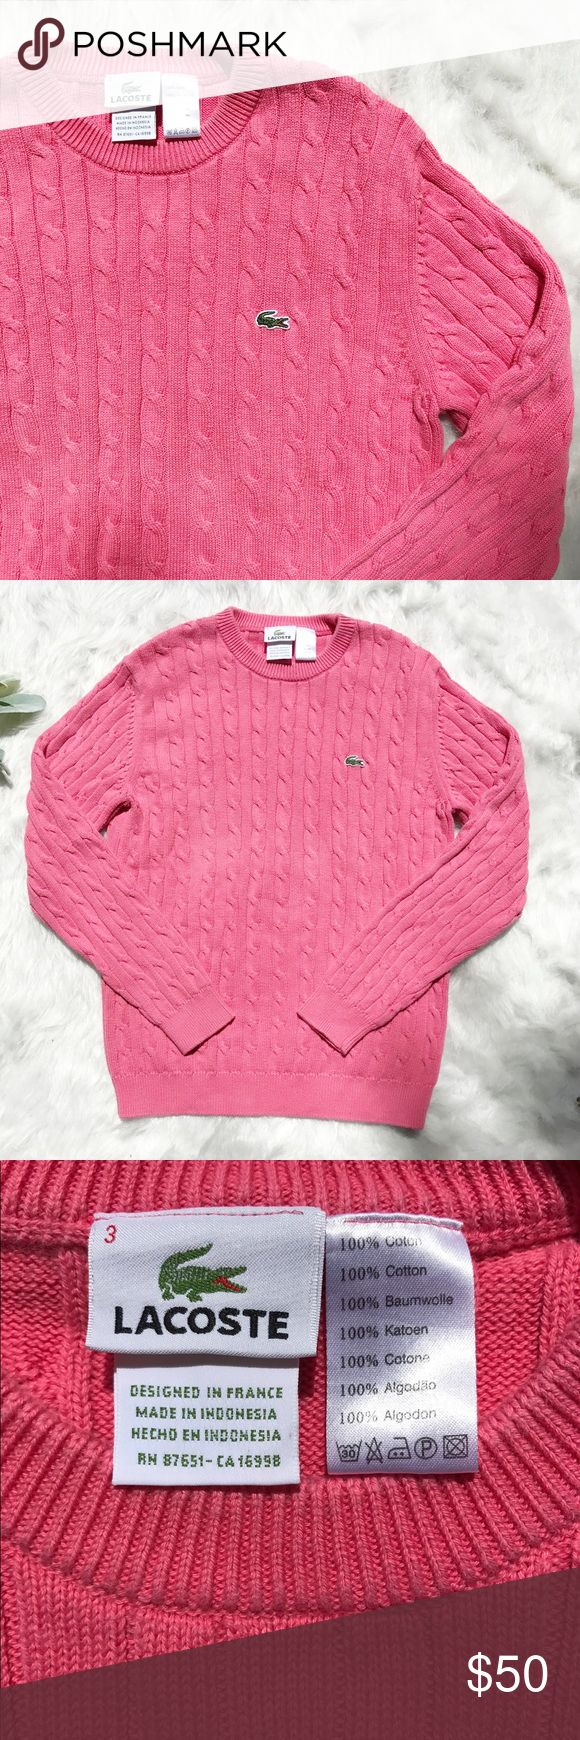 LACOSTE pink sweater size 3 LACOSTE pink sweater in size 3/small. Excellent contrition without flaws. Lacoste Sweaters